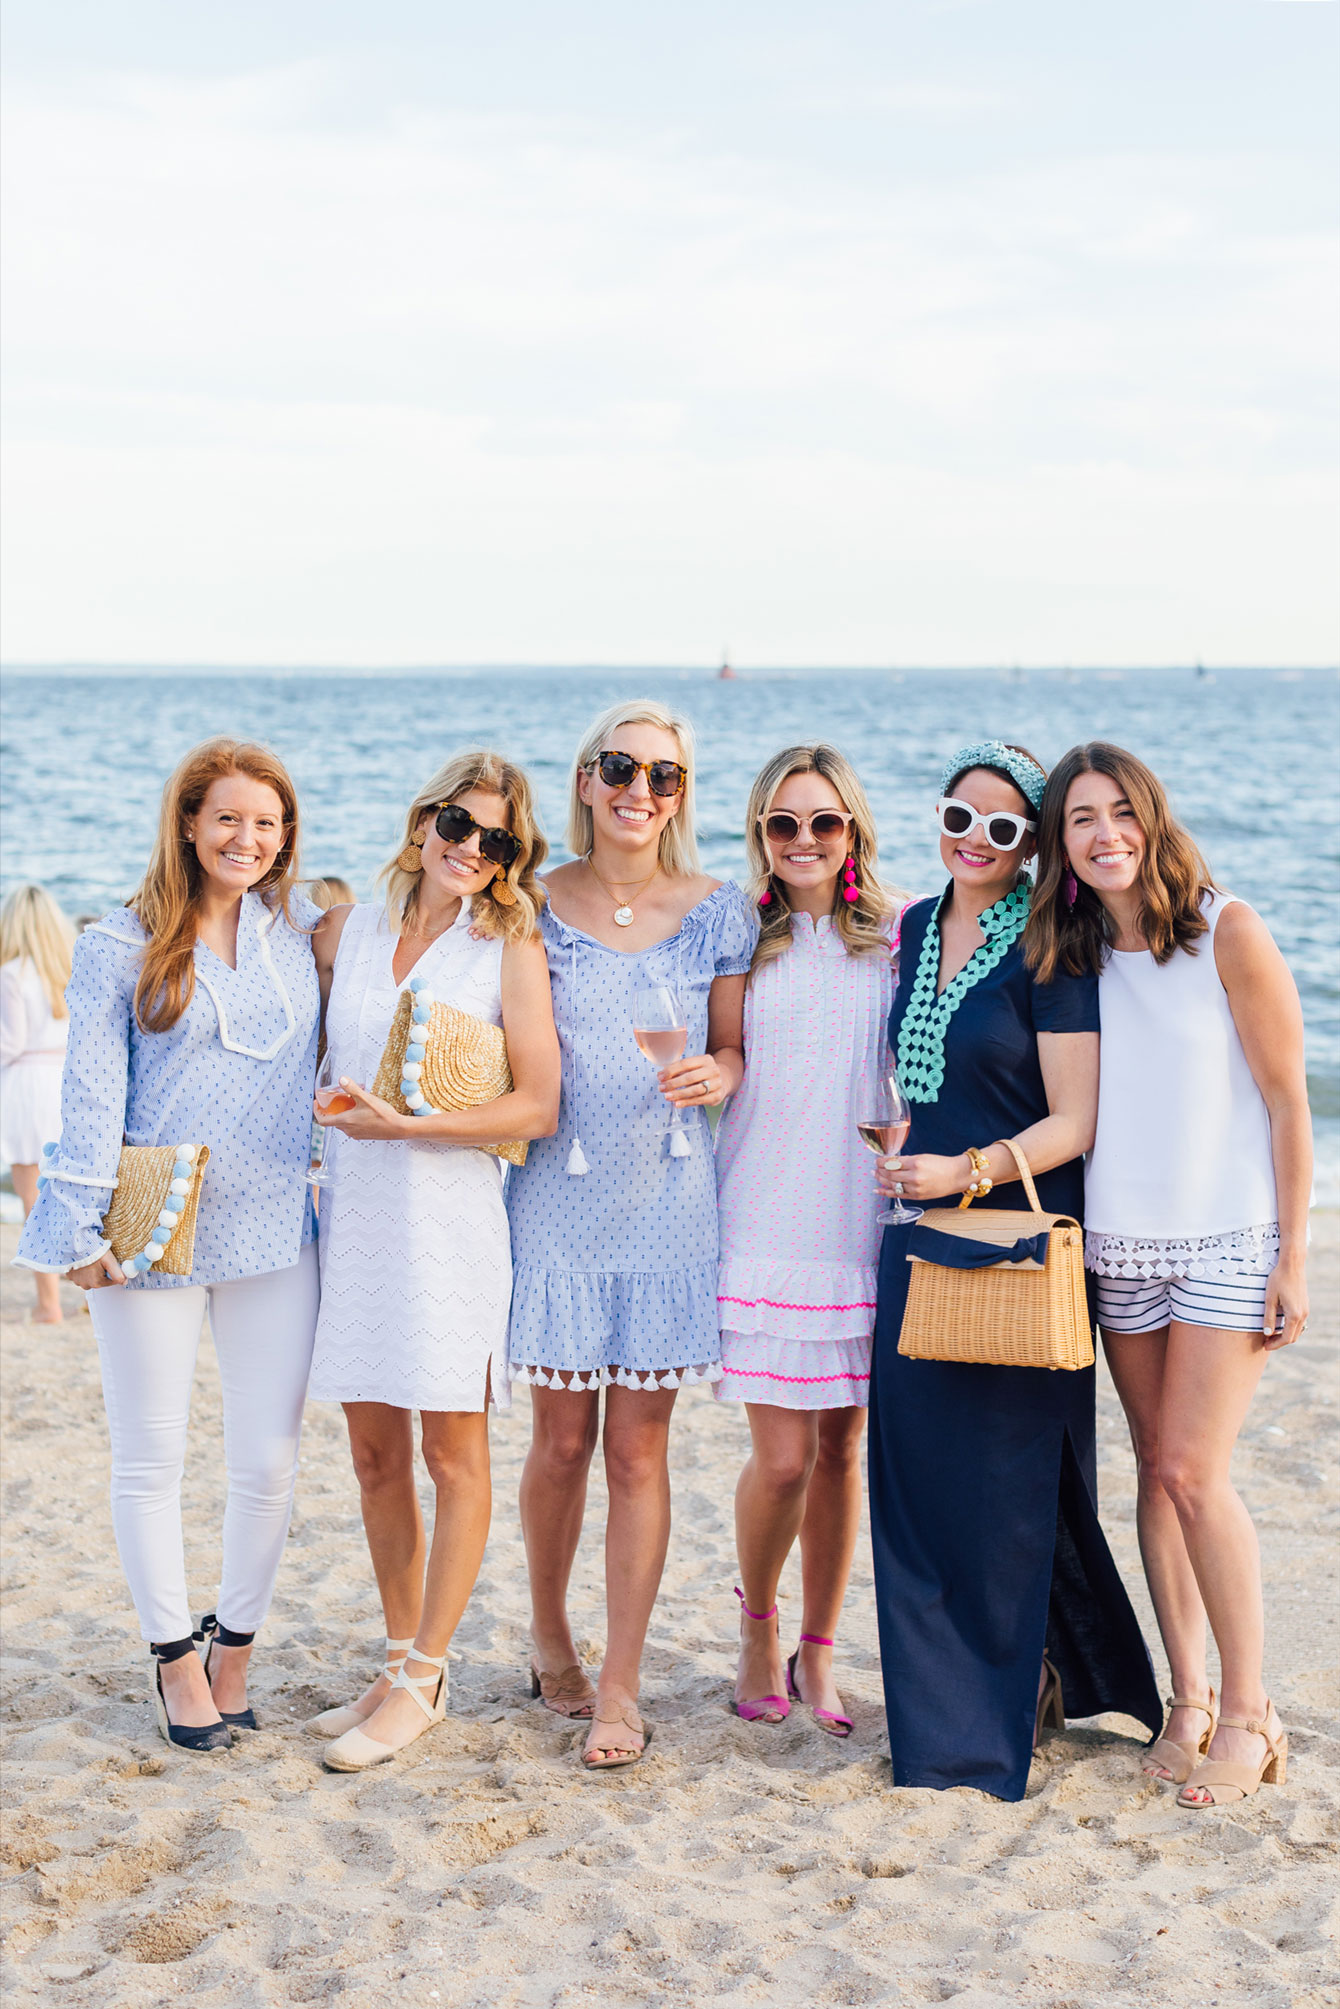 Sail to Sable Blogger Party